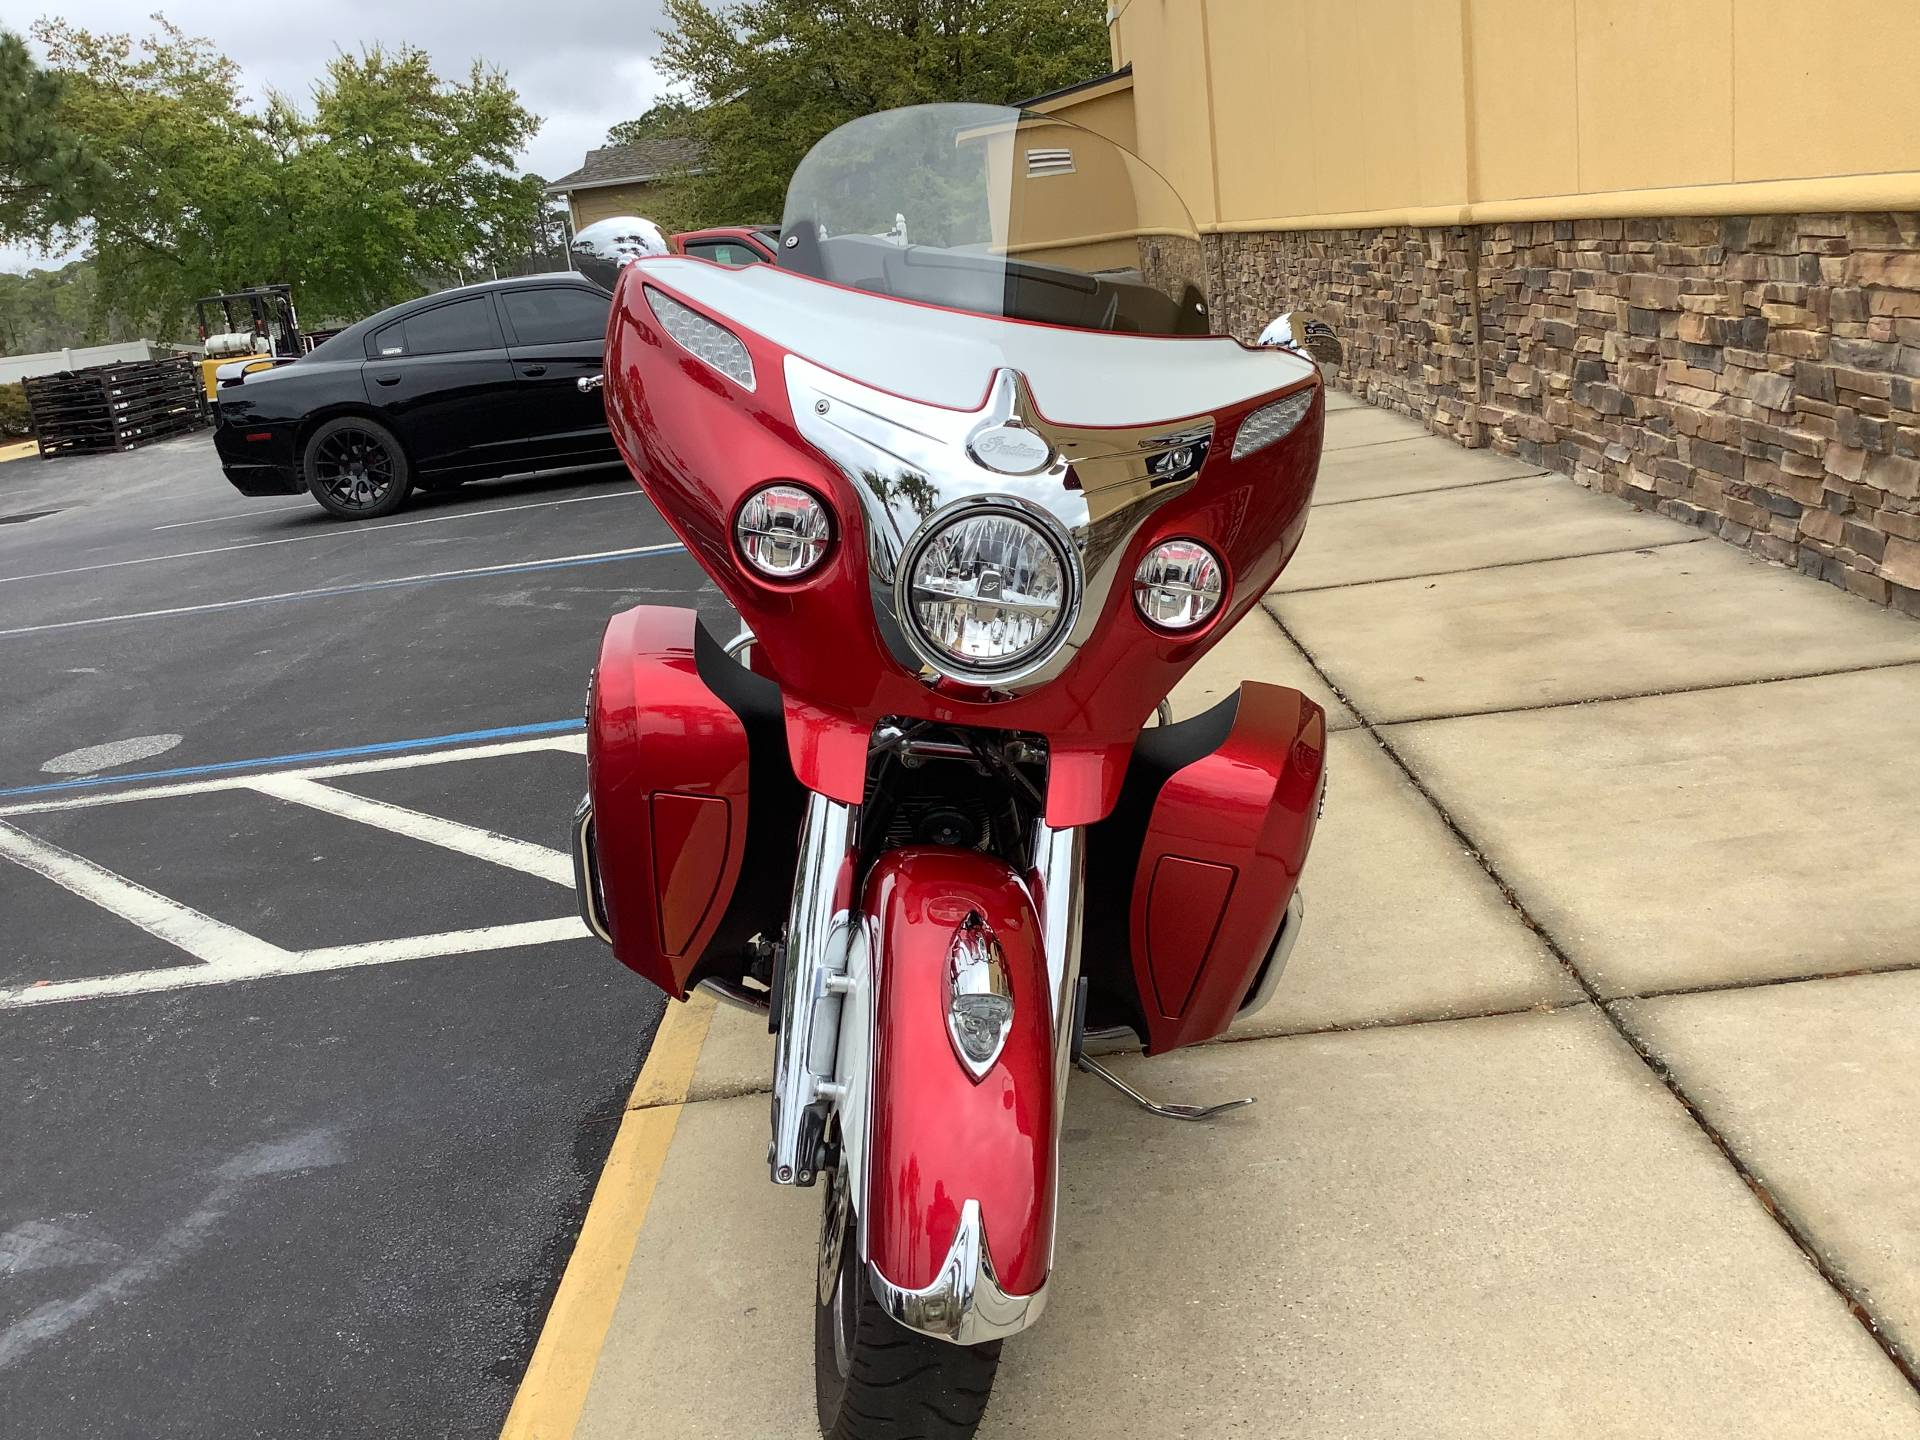 2019 Indian ROADMASTER ICON SERIES in Panama City Beach, Florida - Photo 18